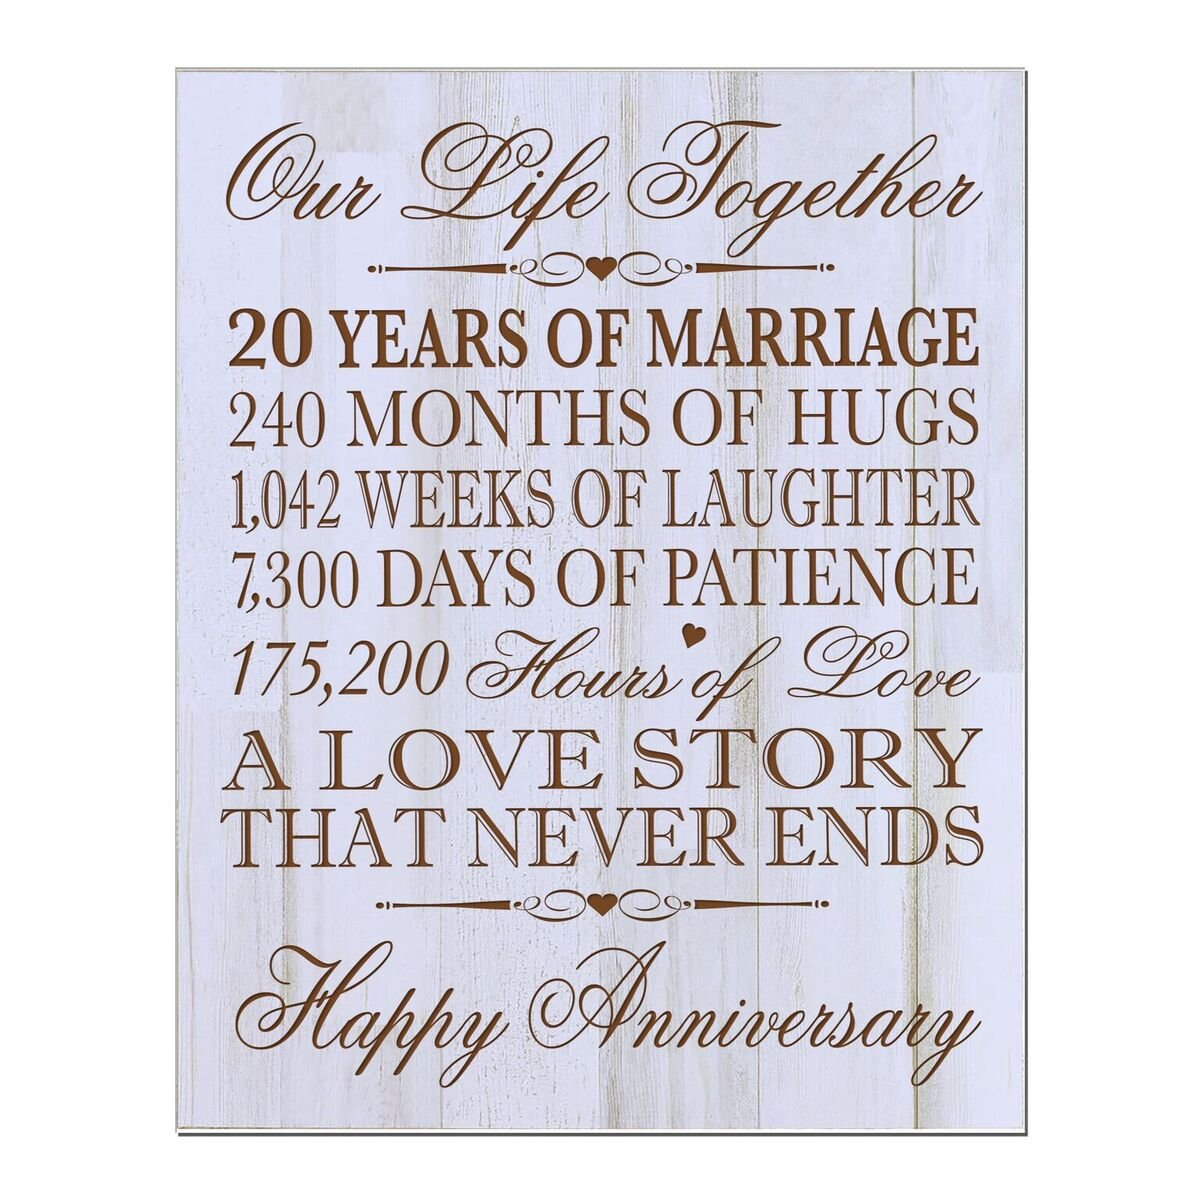 Lifesong Milestones 20th Wedding Anniversary Wall Plaque Gifts For